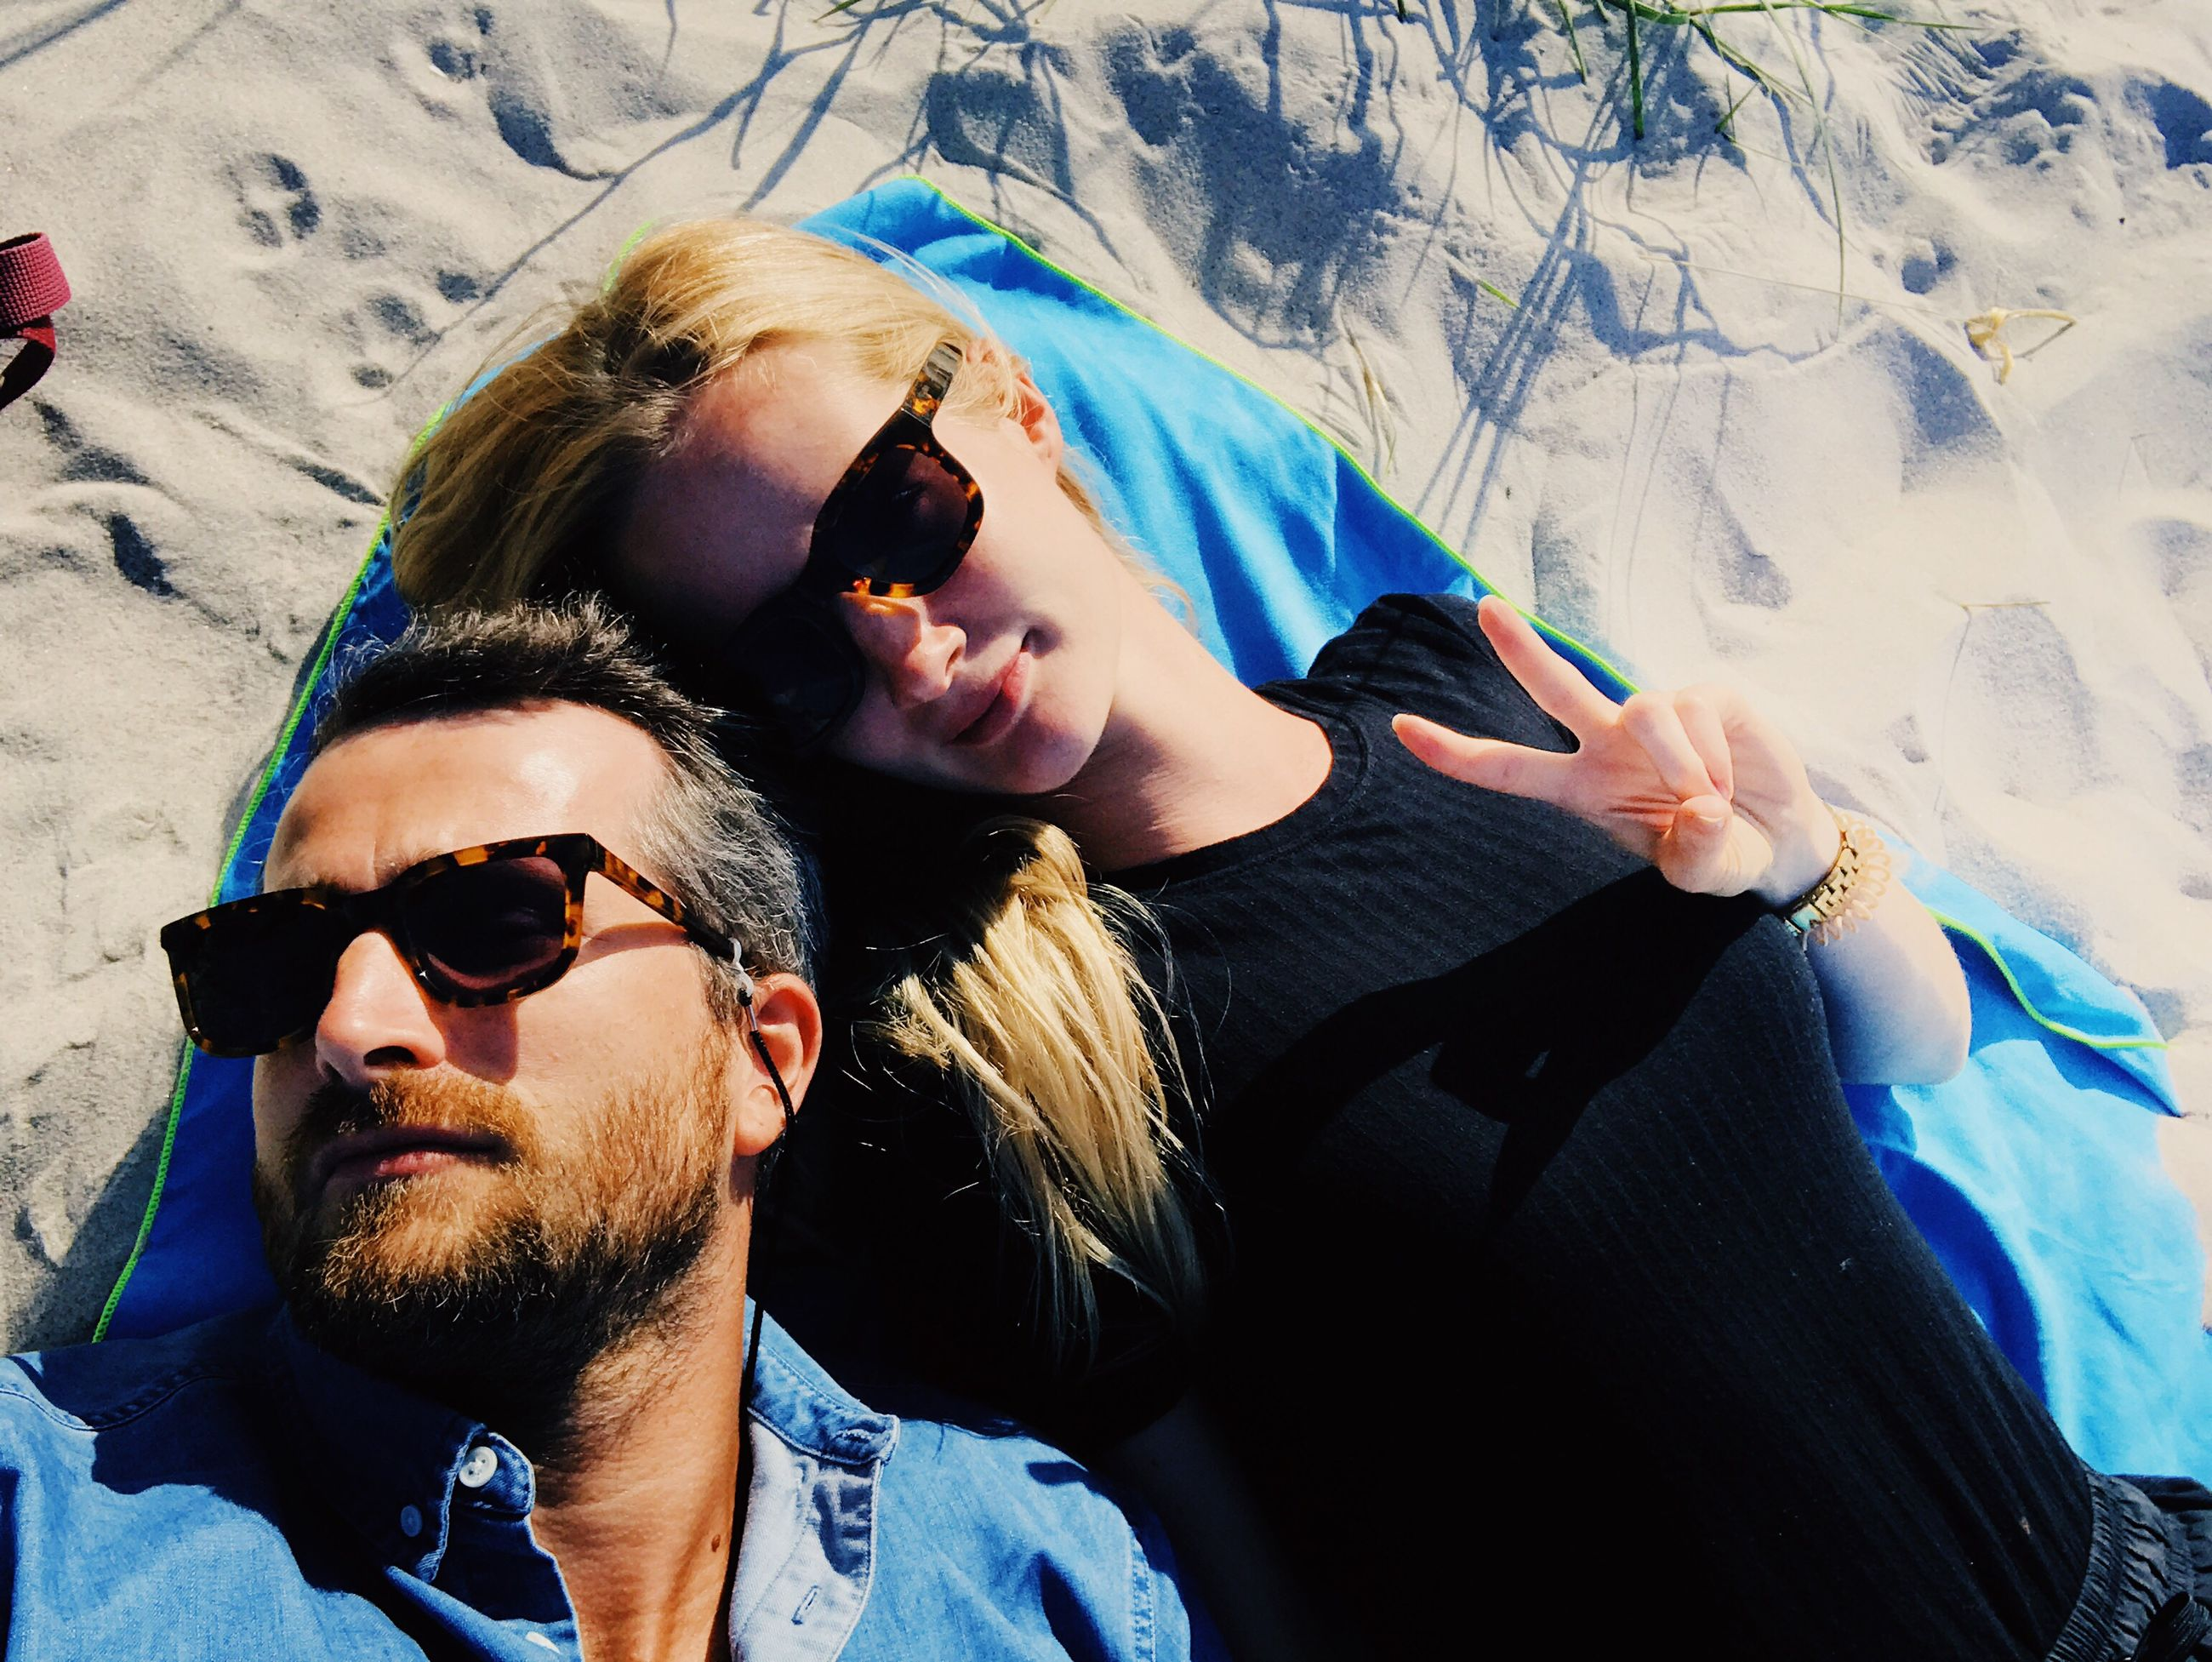 real people, sunglasses, leisure activity, two people, togetherness, lifestyles, happiness, love, outdoors, fun, smiling, young women, young adult, day, vacations, bonding, couple - relationship, portrait, nature, friendship, people